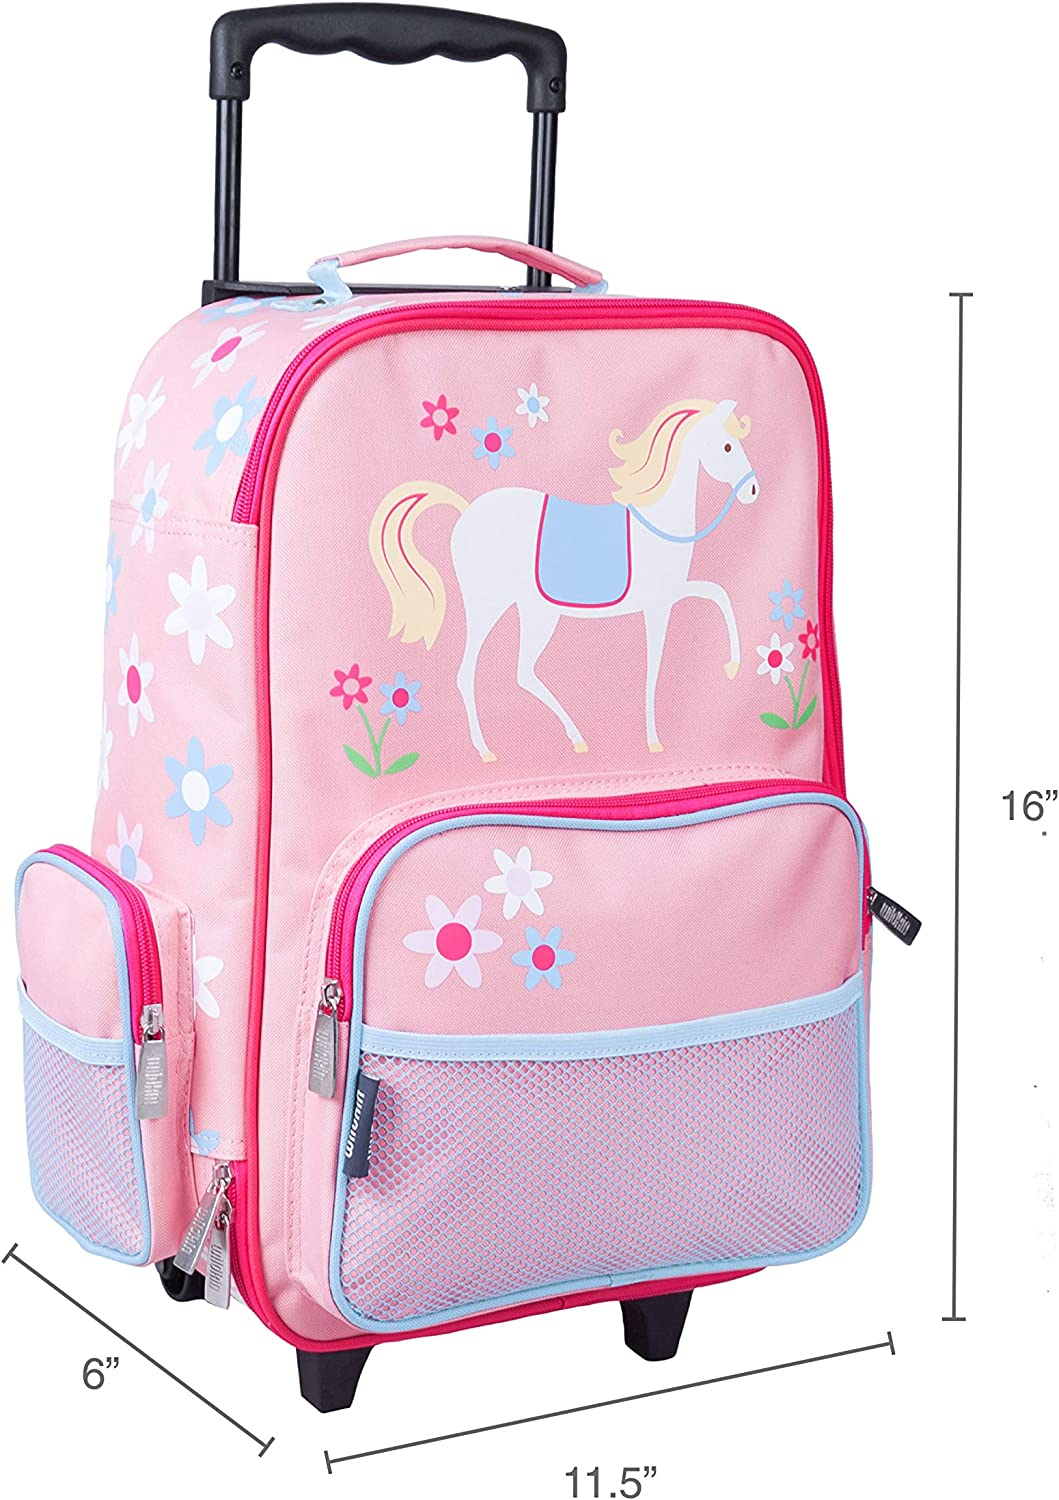 Wildkin Kids Rolling Suitcase for Boys and Girls Olive Kids Heroes BPA-free Kids Luggage is Carry-On Size and Perfect for School and Overnight Travel Measures 16 x 11.5 x 6 Inches